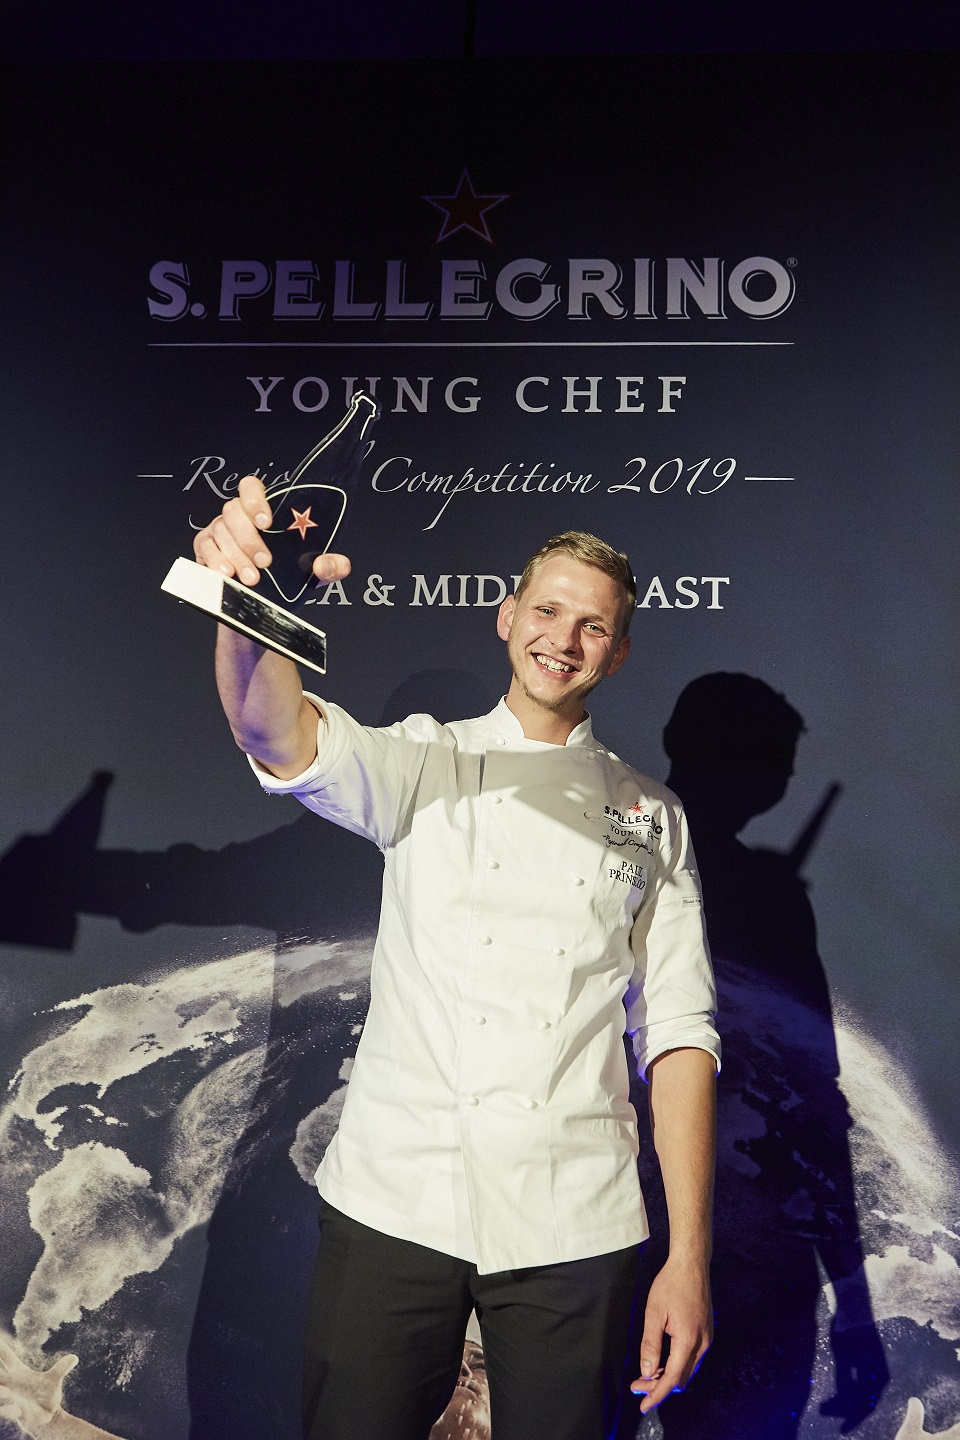 S.Pellegrino Young Chef Africa & Middle East 2019 winner Paul Thinus Prinsloo